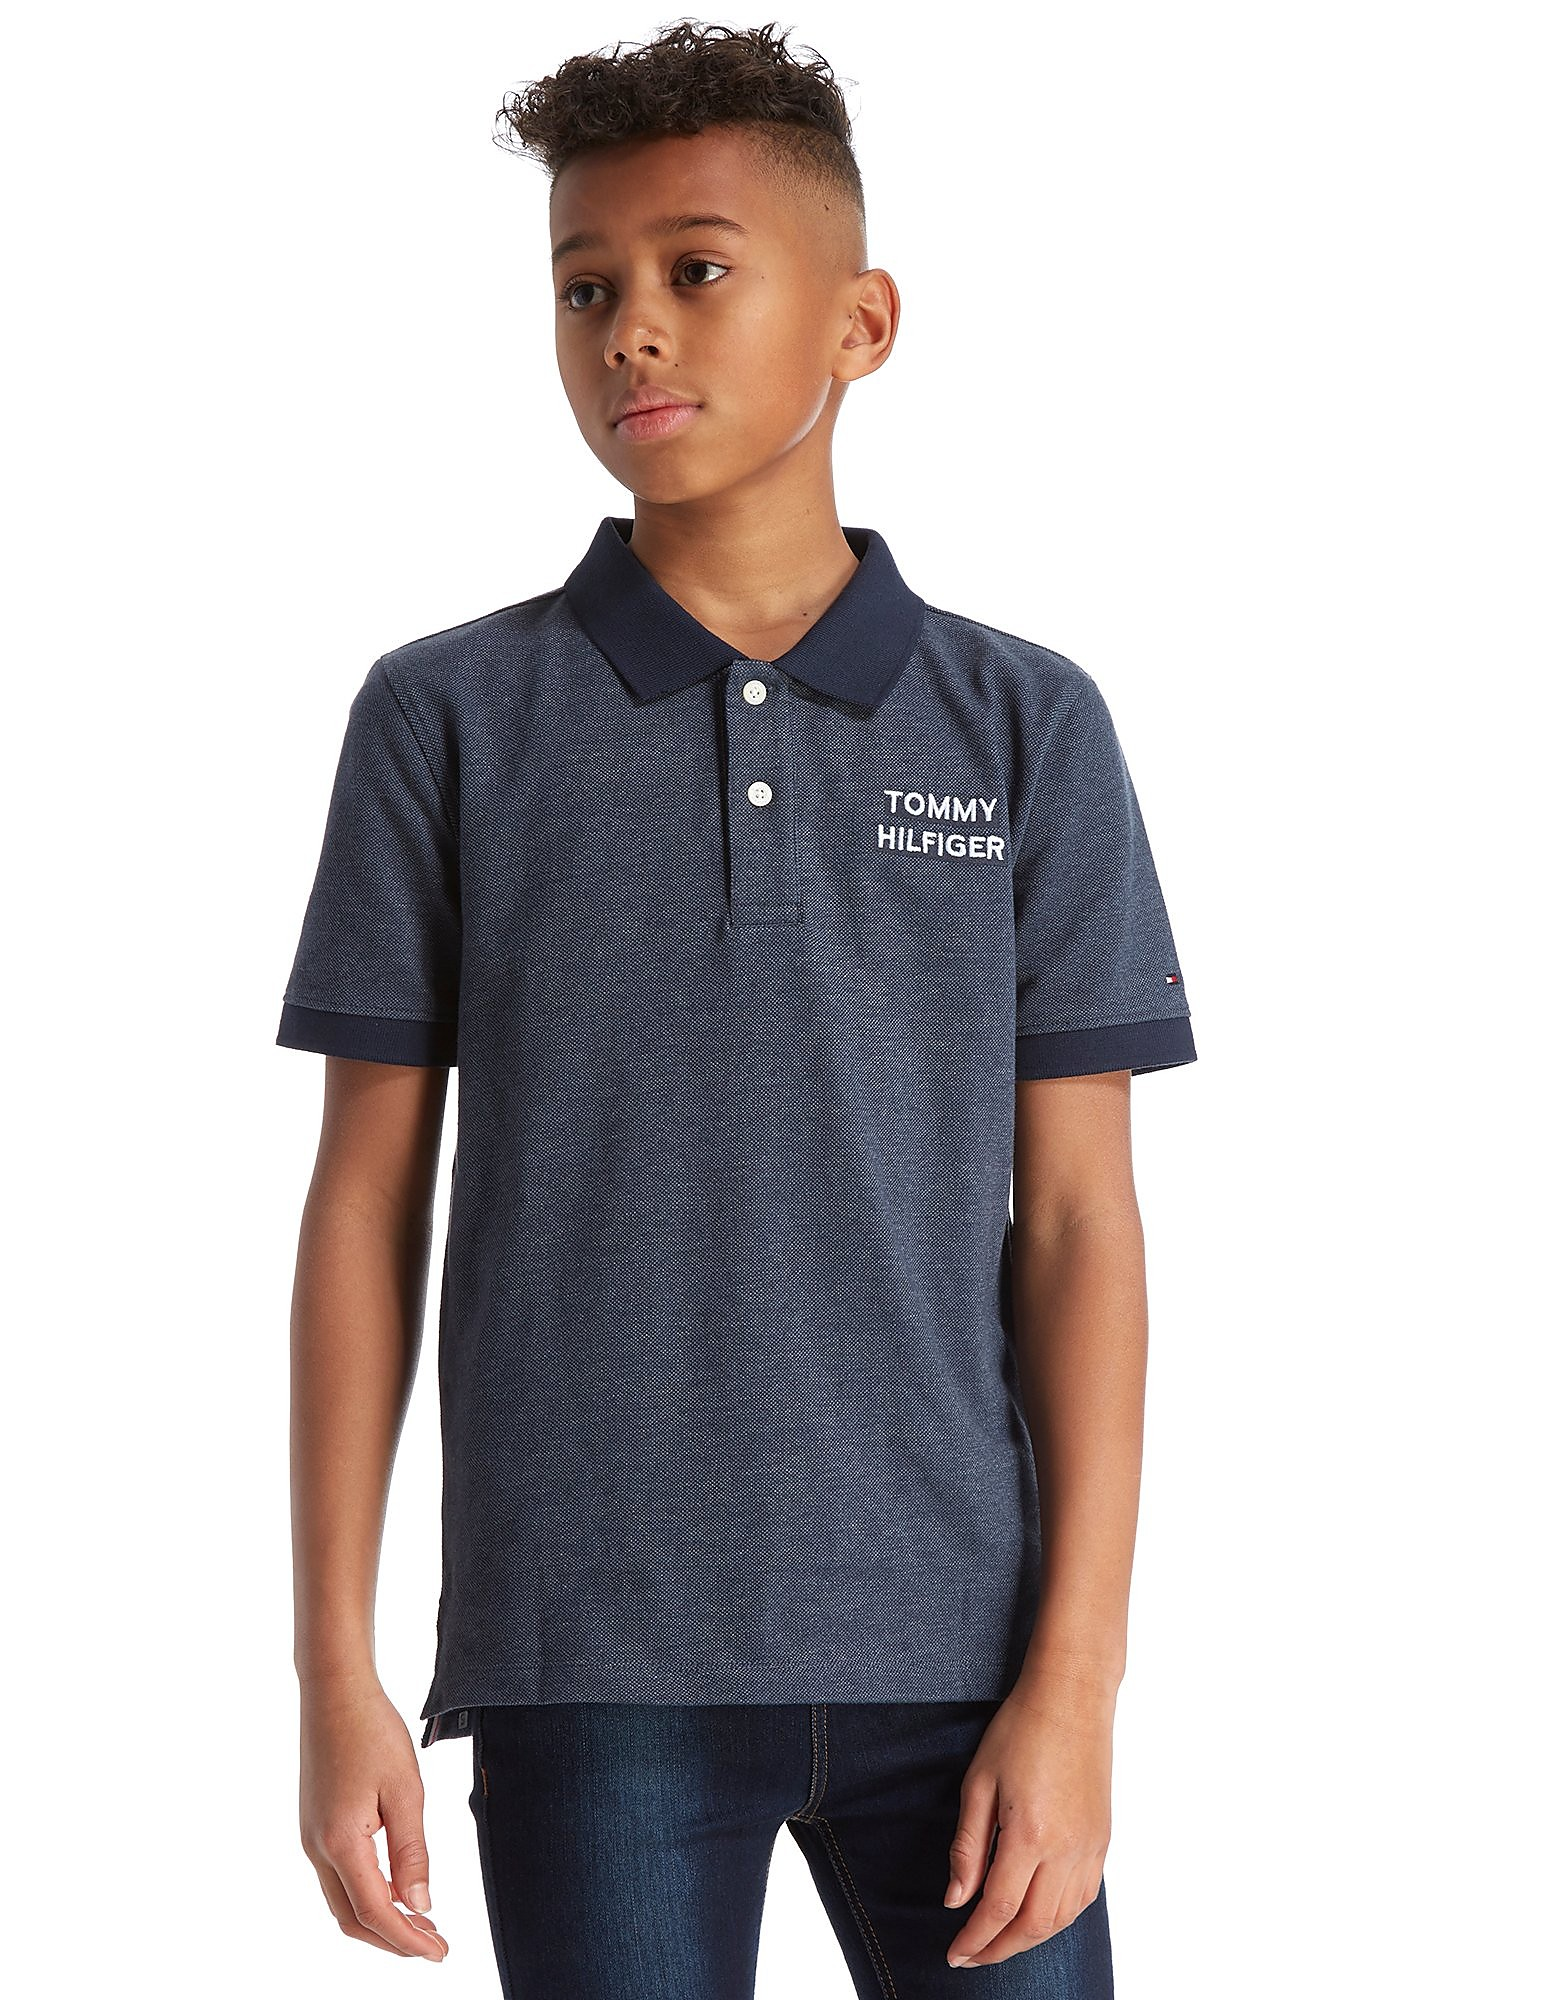 Tommy Hilfiger Polo Shirt Junior